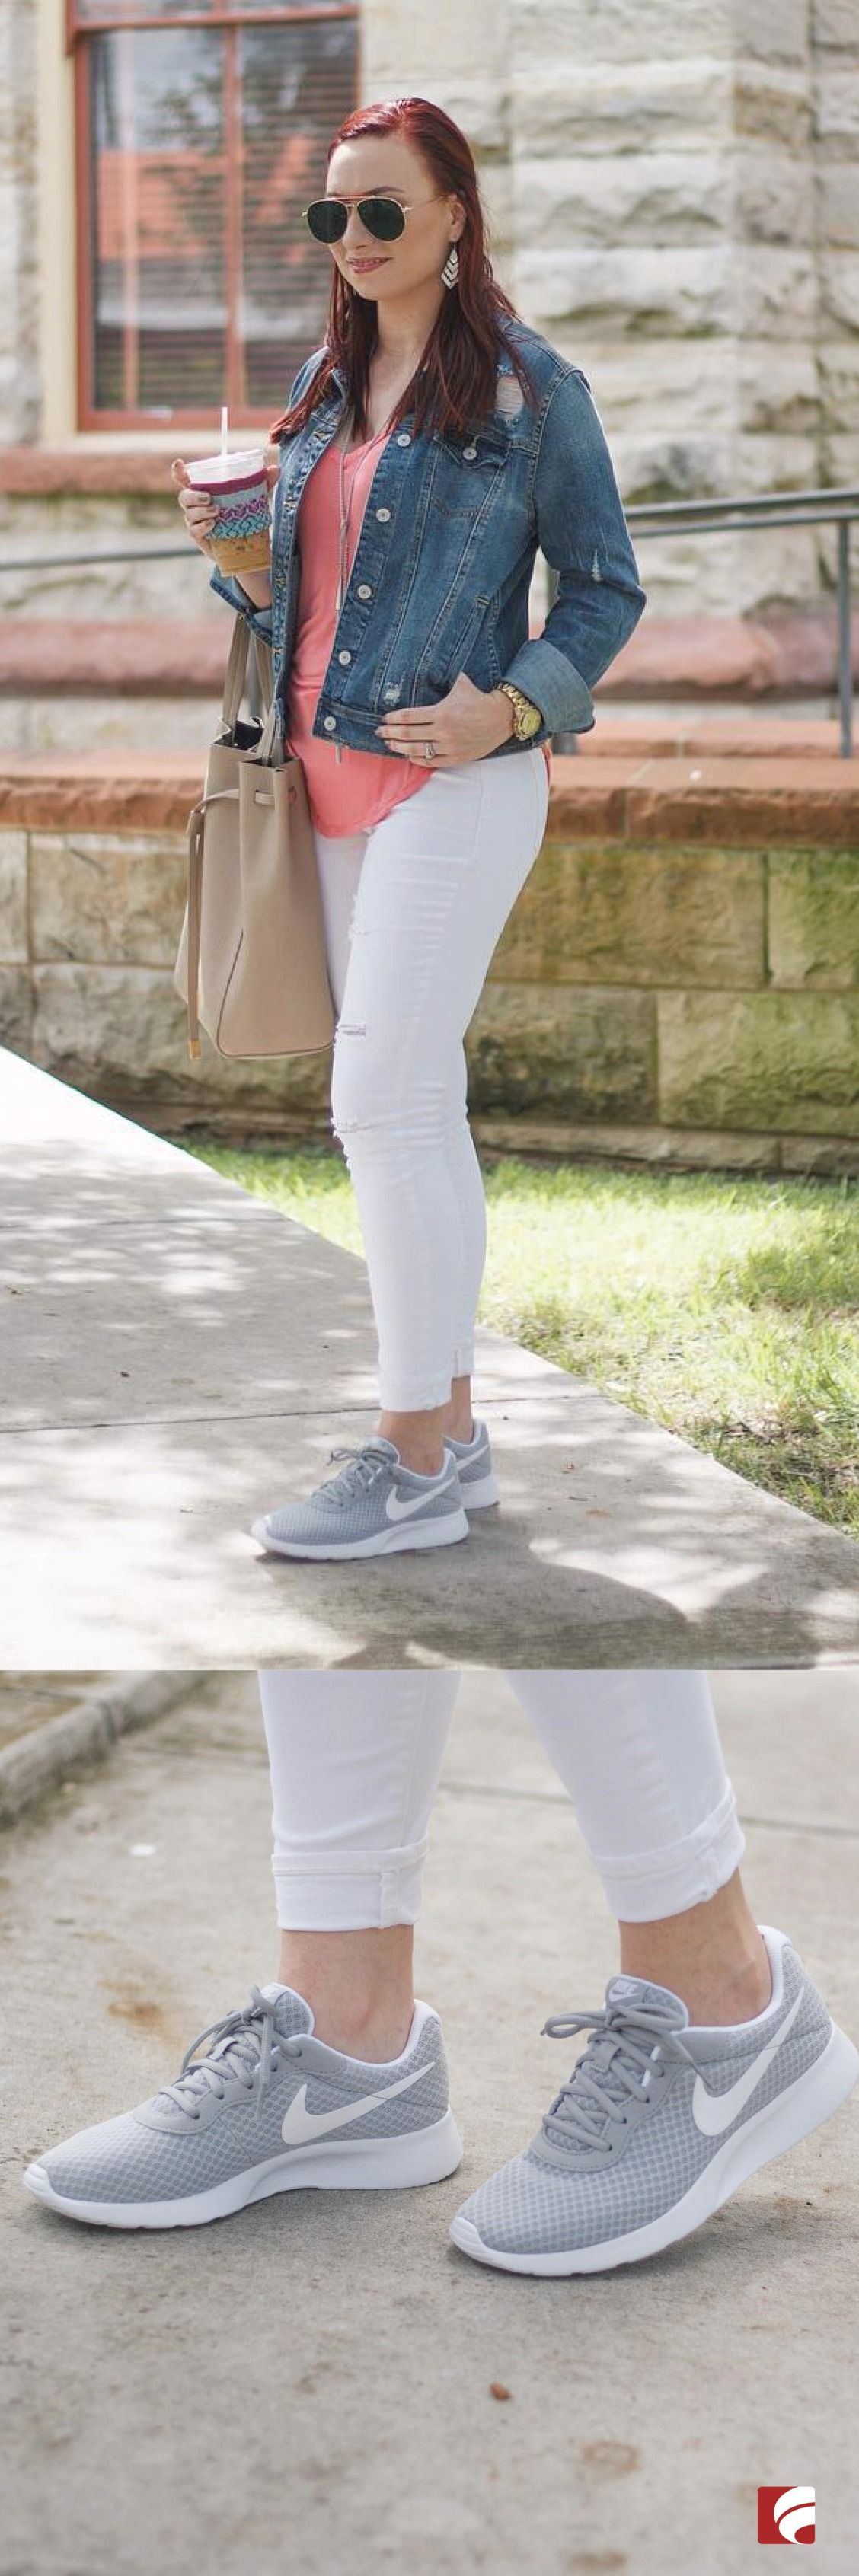 cce30f6f0a8b The chic sneak that fits into (nearly) every outfit  meet the Nike Tanjun!  Kimberly of blog Mrs. Clifton s Closet pairs her Nike Tanjuns with white  jeans